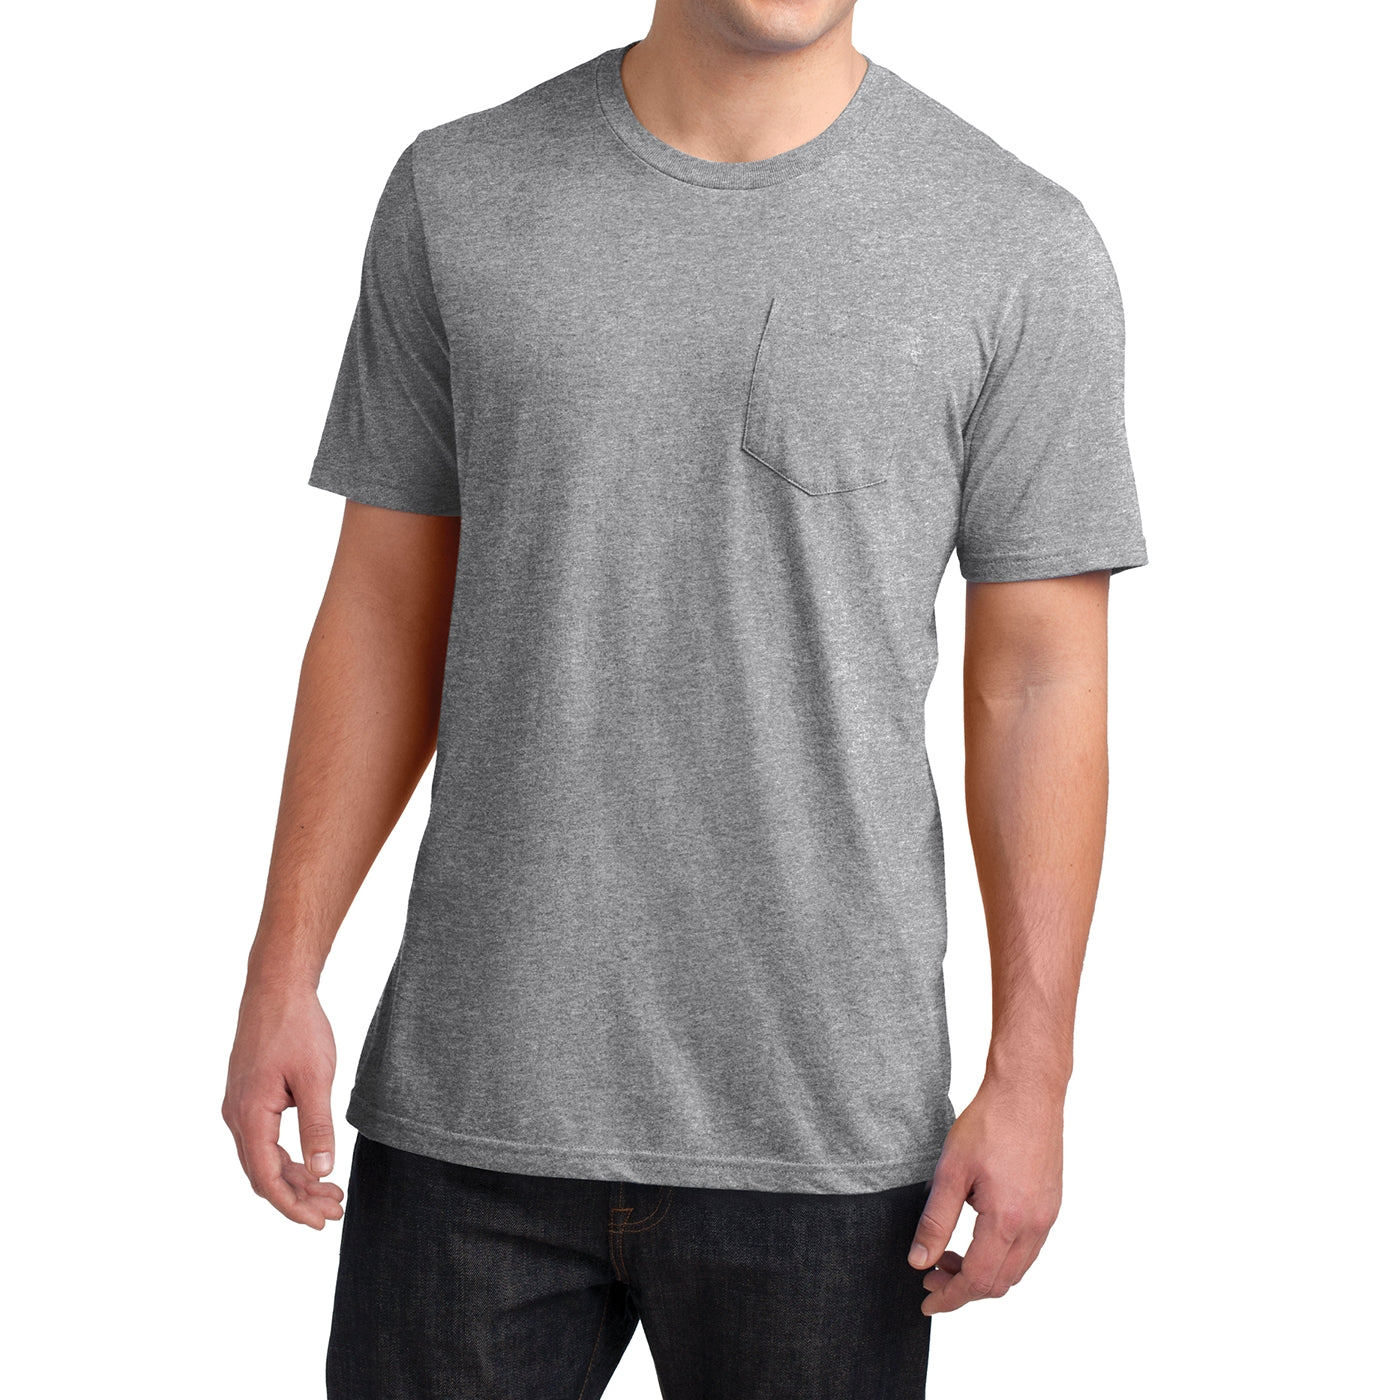 Men's Young Very Important Tee with Pocket - Light Heather Grey